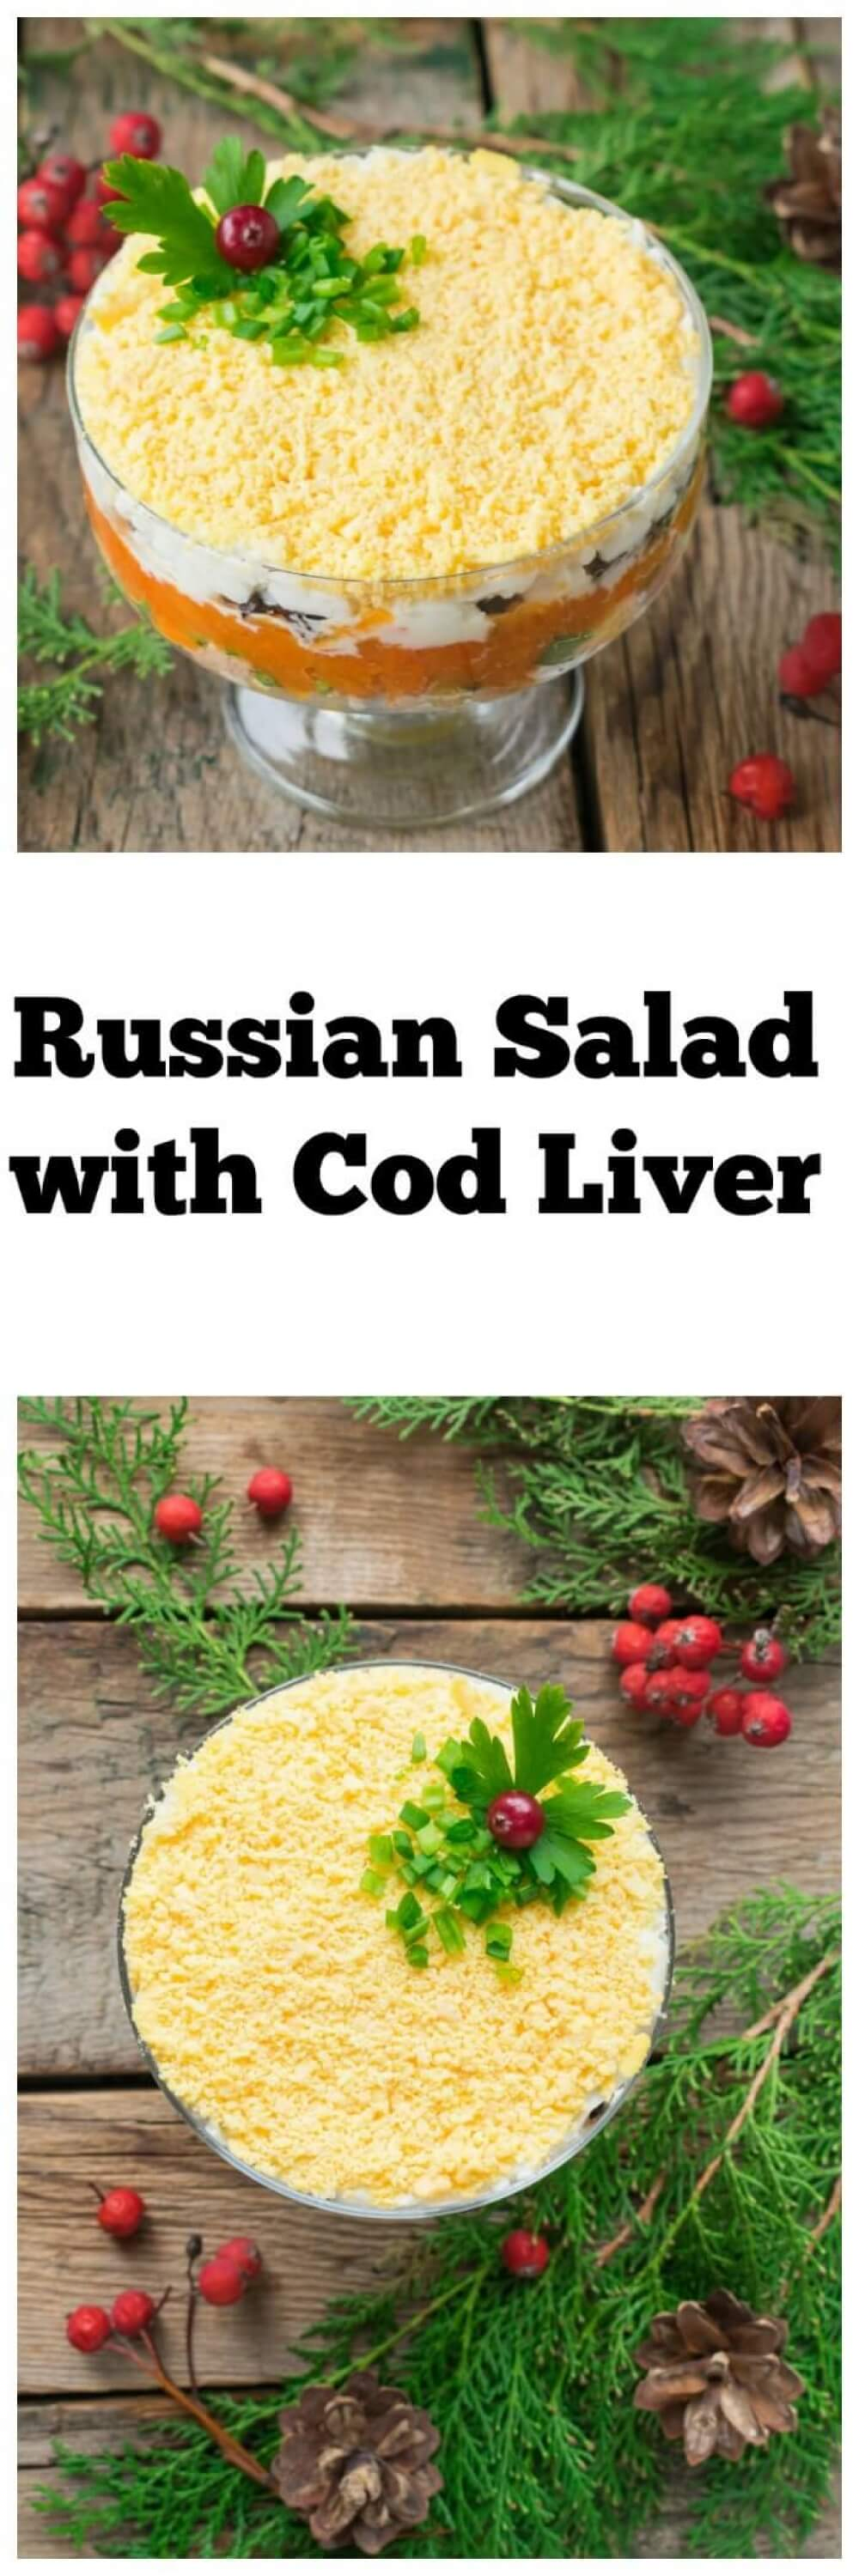 Cod liver with eggs: recipes with photos 83